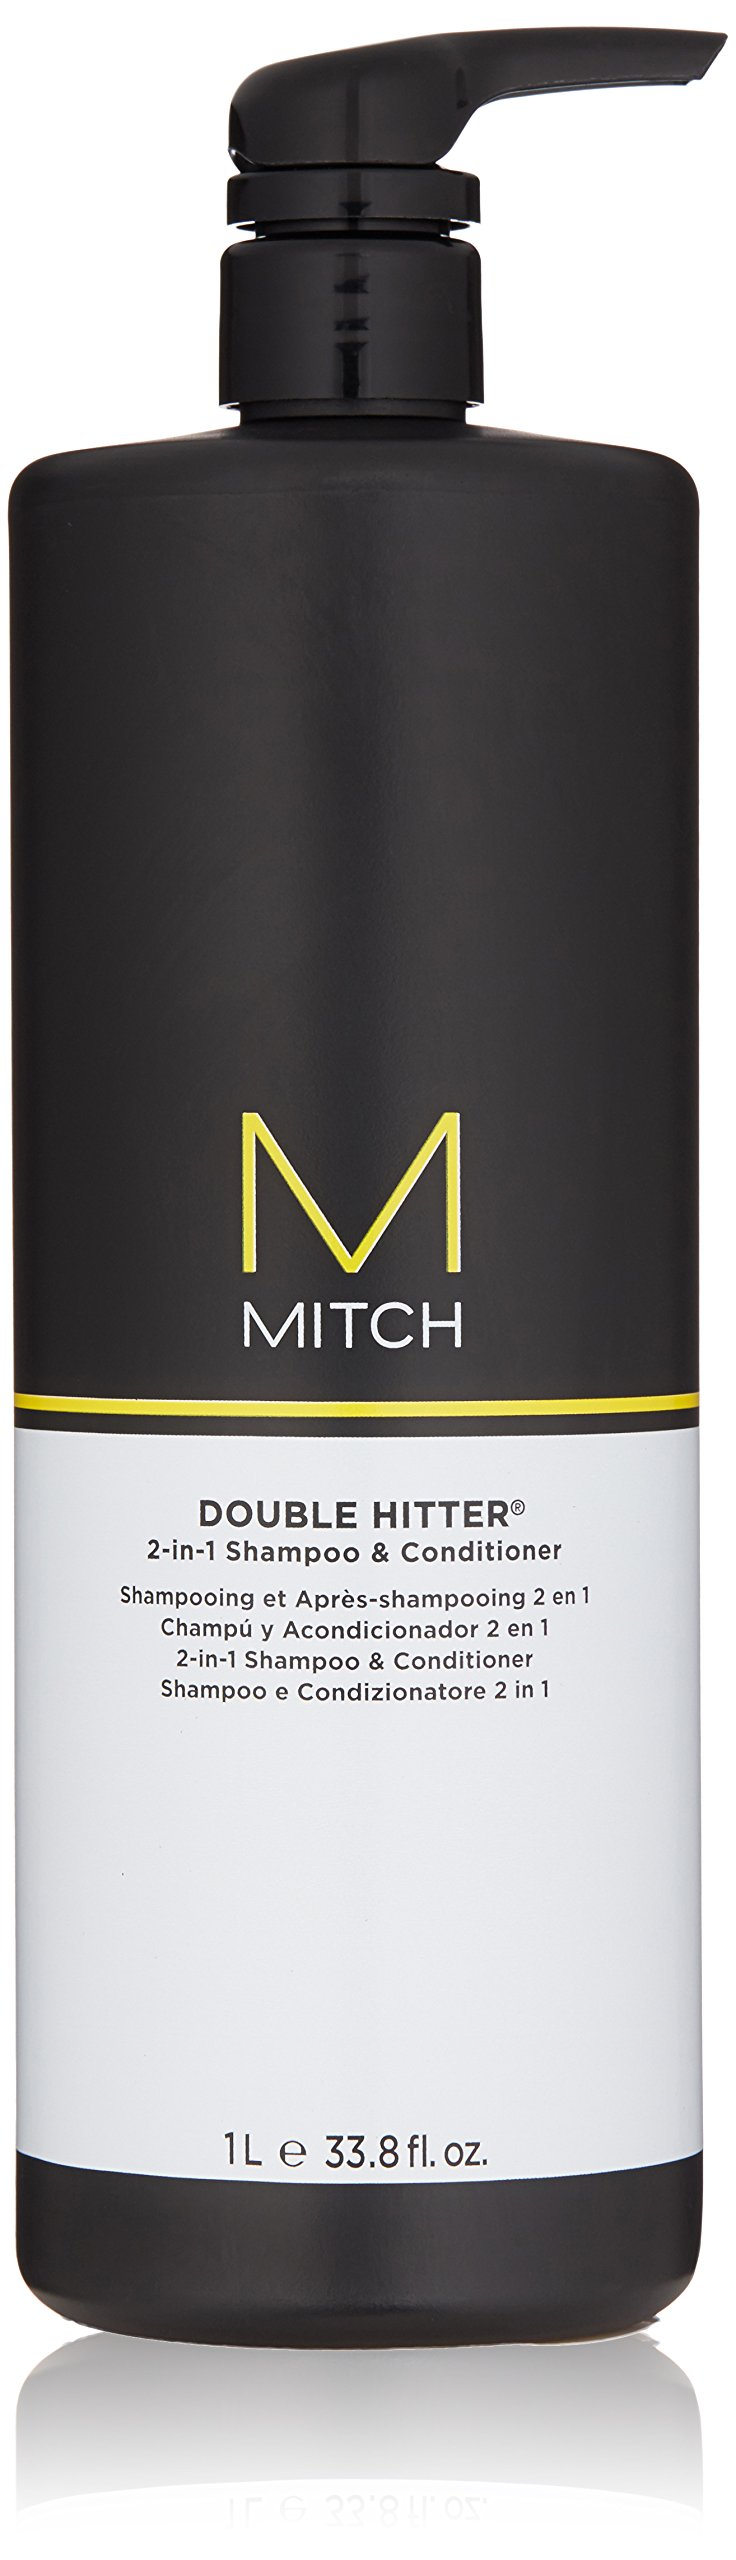 MITCH Double Hitter 2-in-1 Shampoo and Conditioner, 33.8 Fl Oz by Mitch